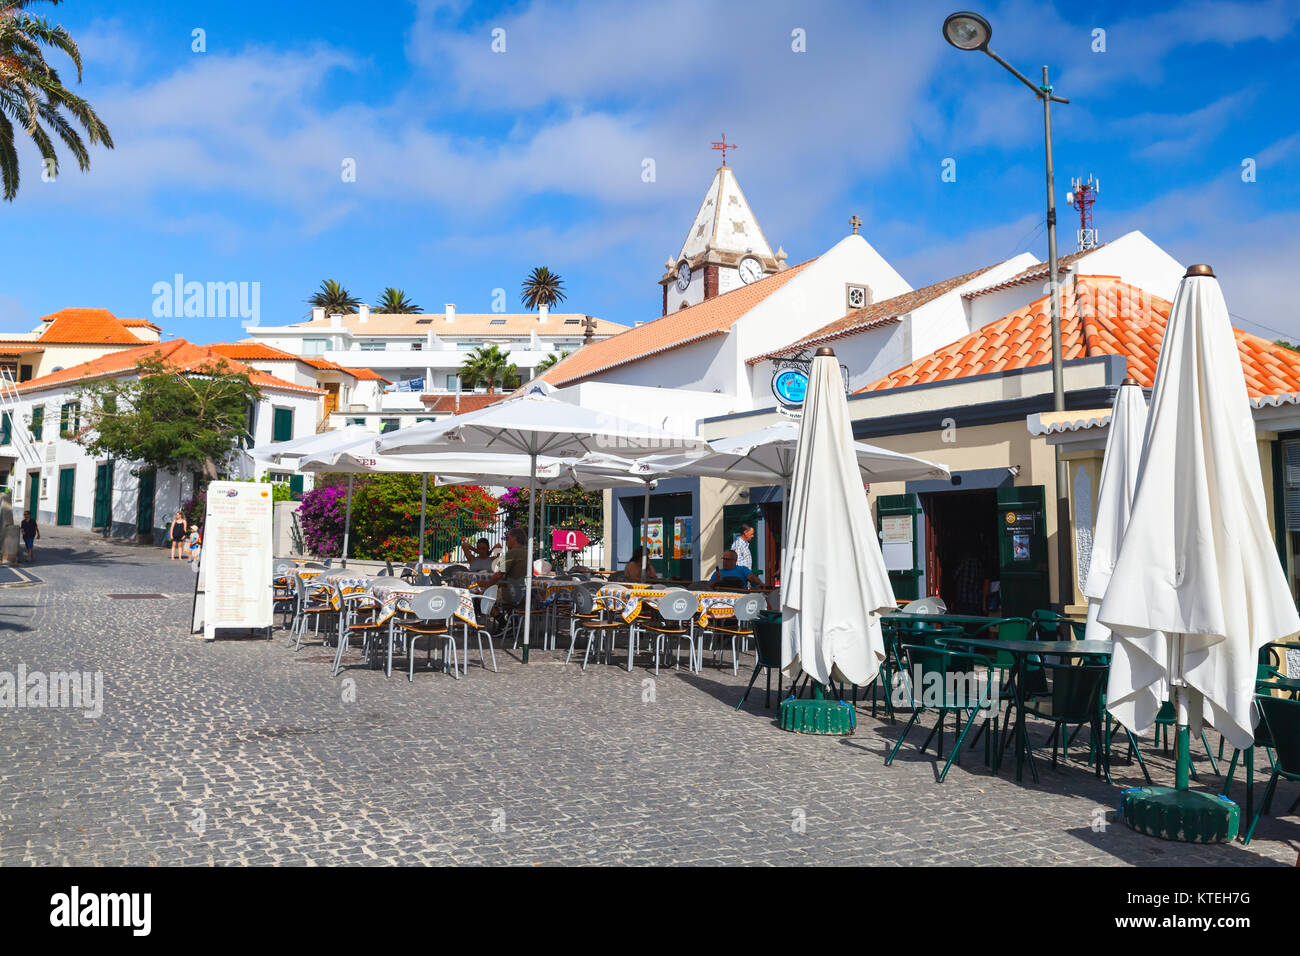 Vila Baleira, Portugal - August 18, 2017: Street view of Largo do Pelourinho street. Vila Baleira the only city - Stock Image